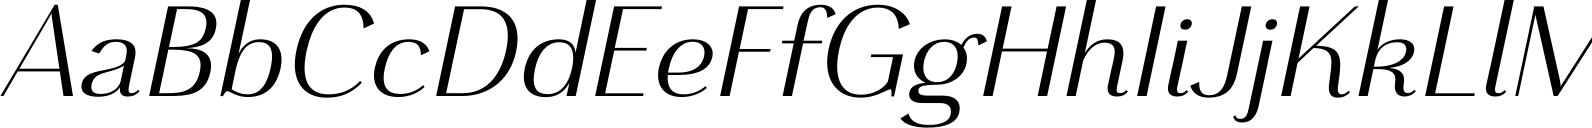 Grenale Norm Regular Italic Font